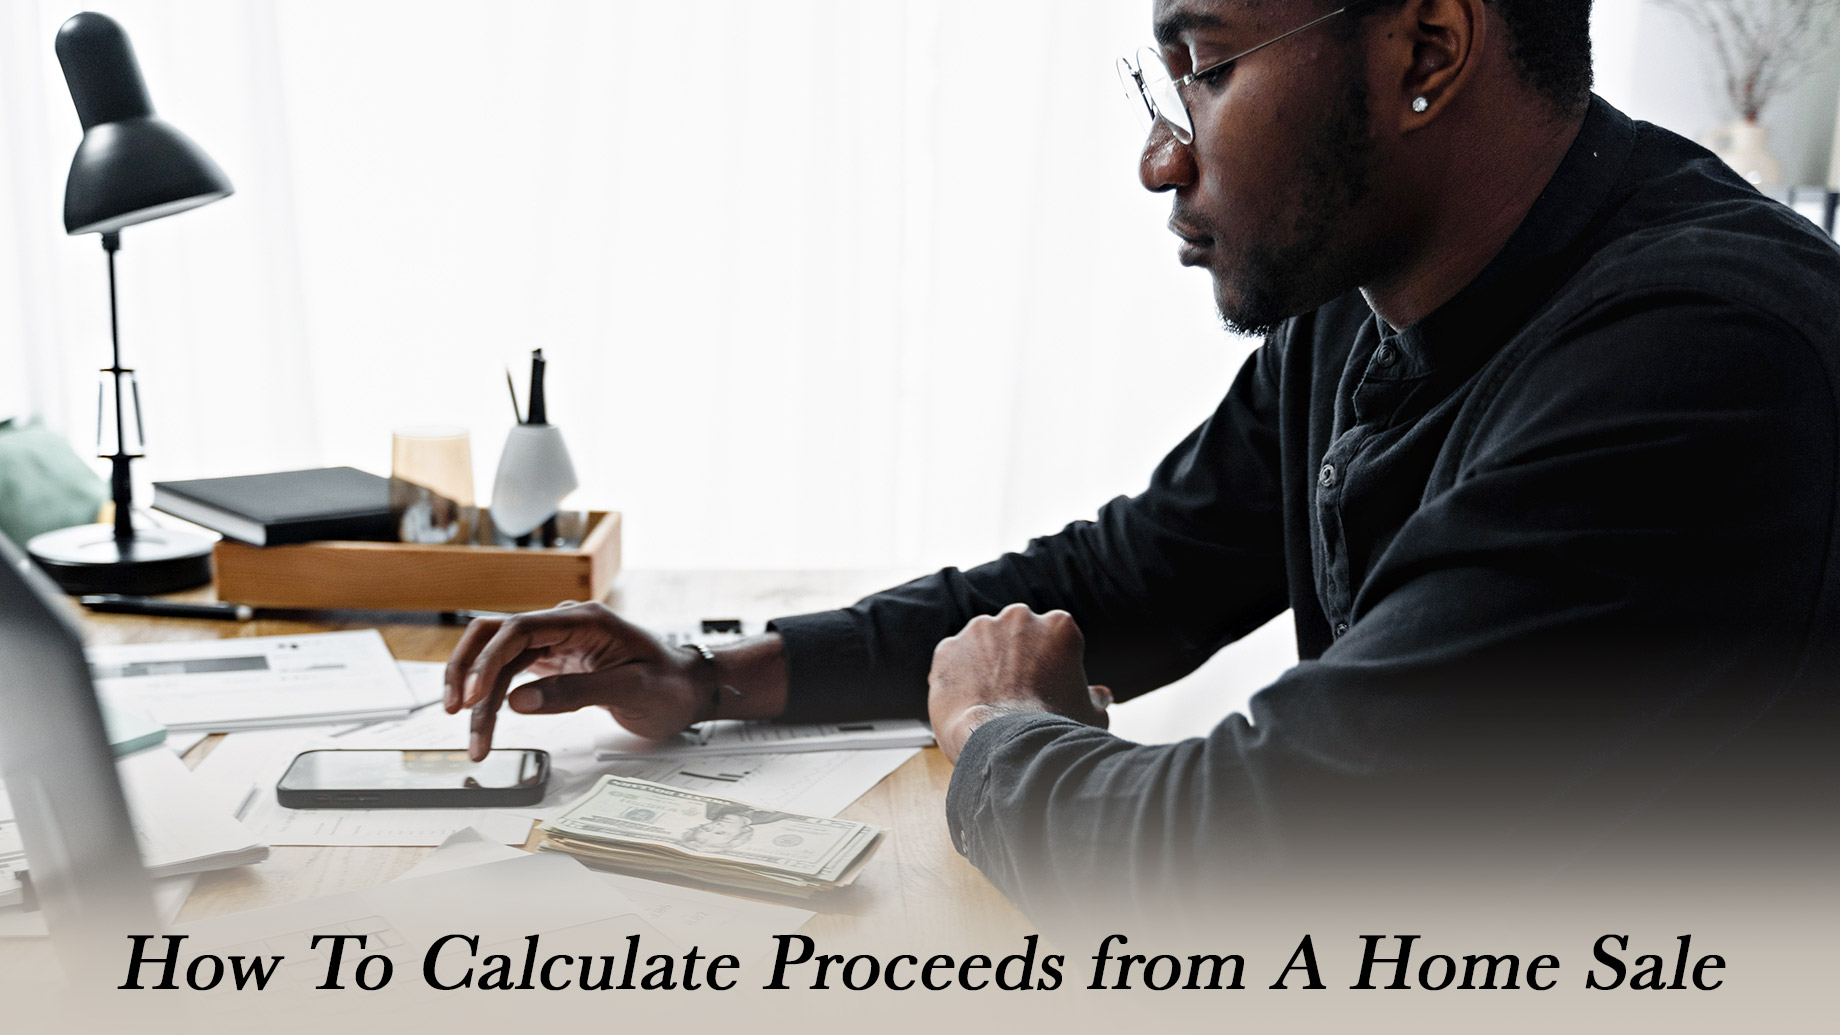 How To Calculate Proceeds from a Home Sale